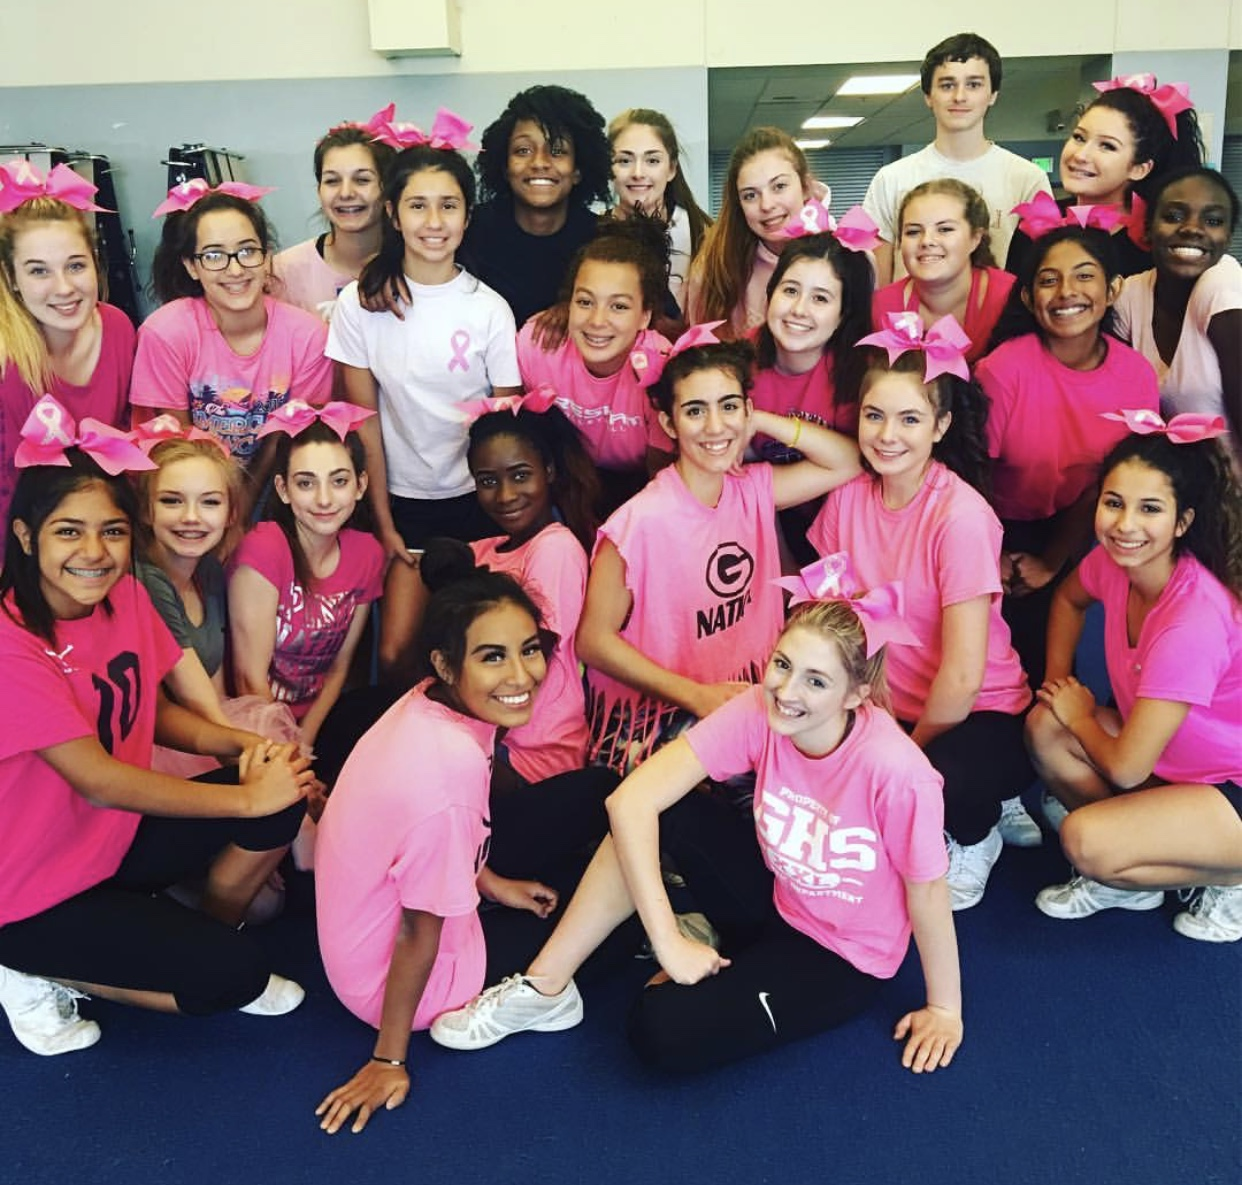 Gresham cheer team poses for the camera during practice.